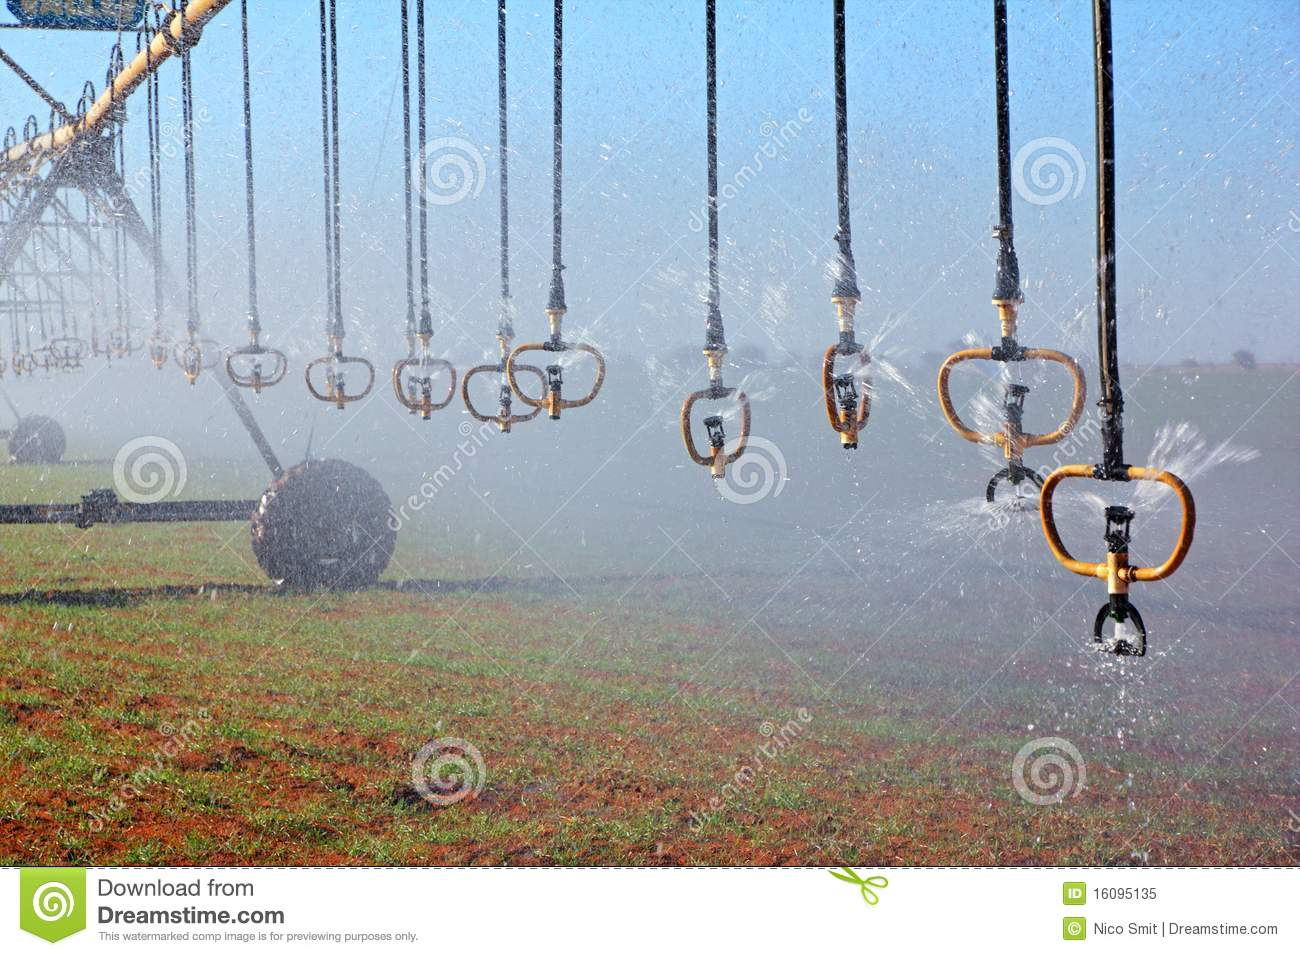 Pivot Irrigation Royalty Free Stock Photo   Image  16095135